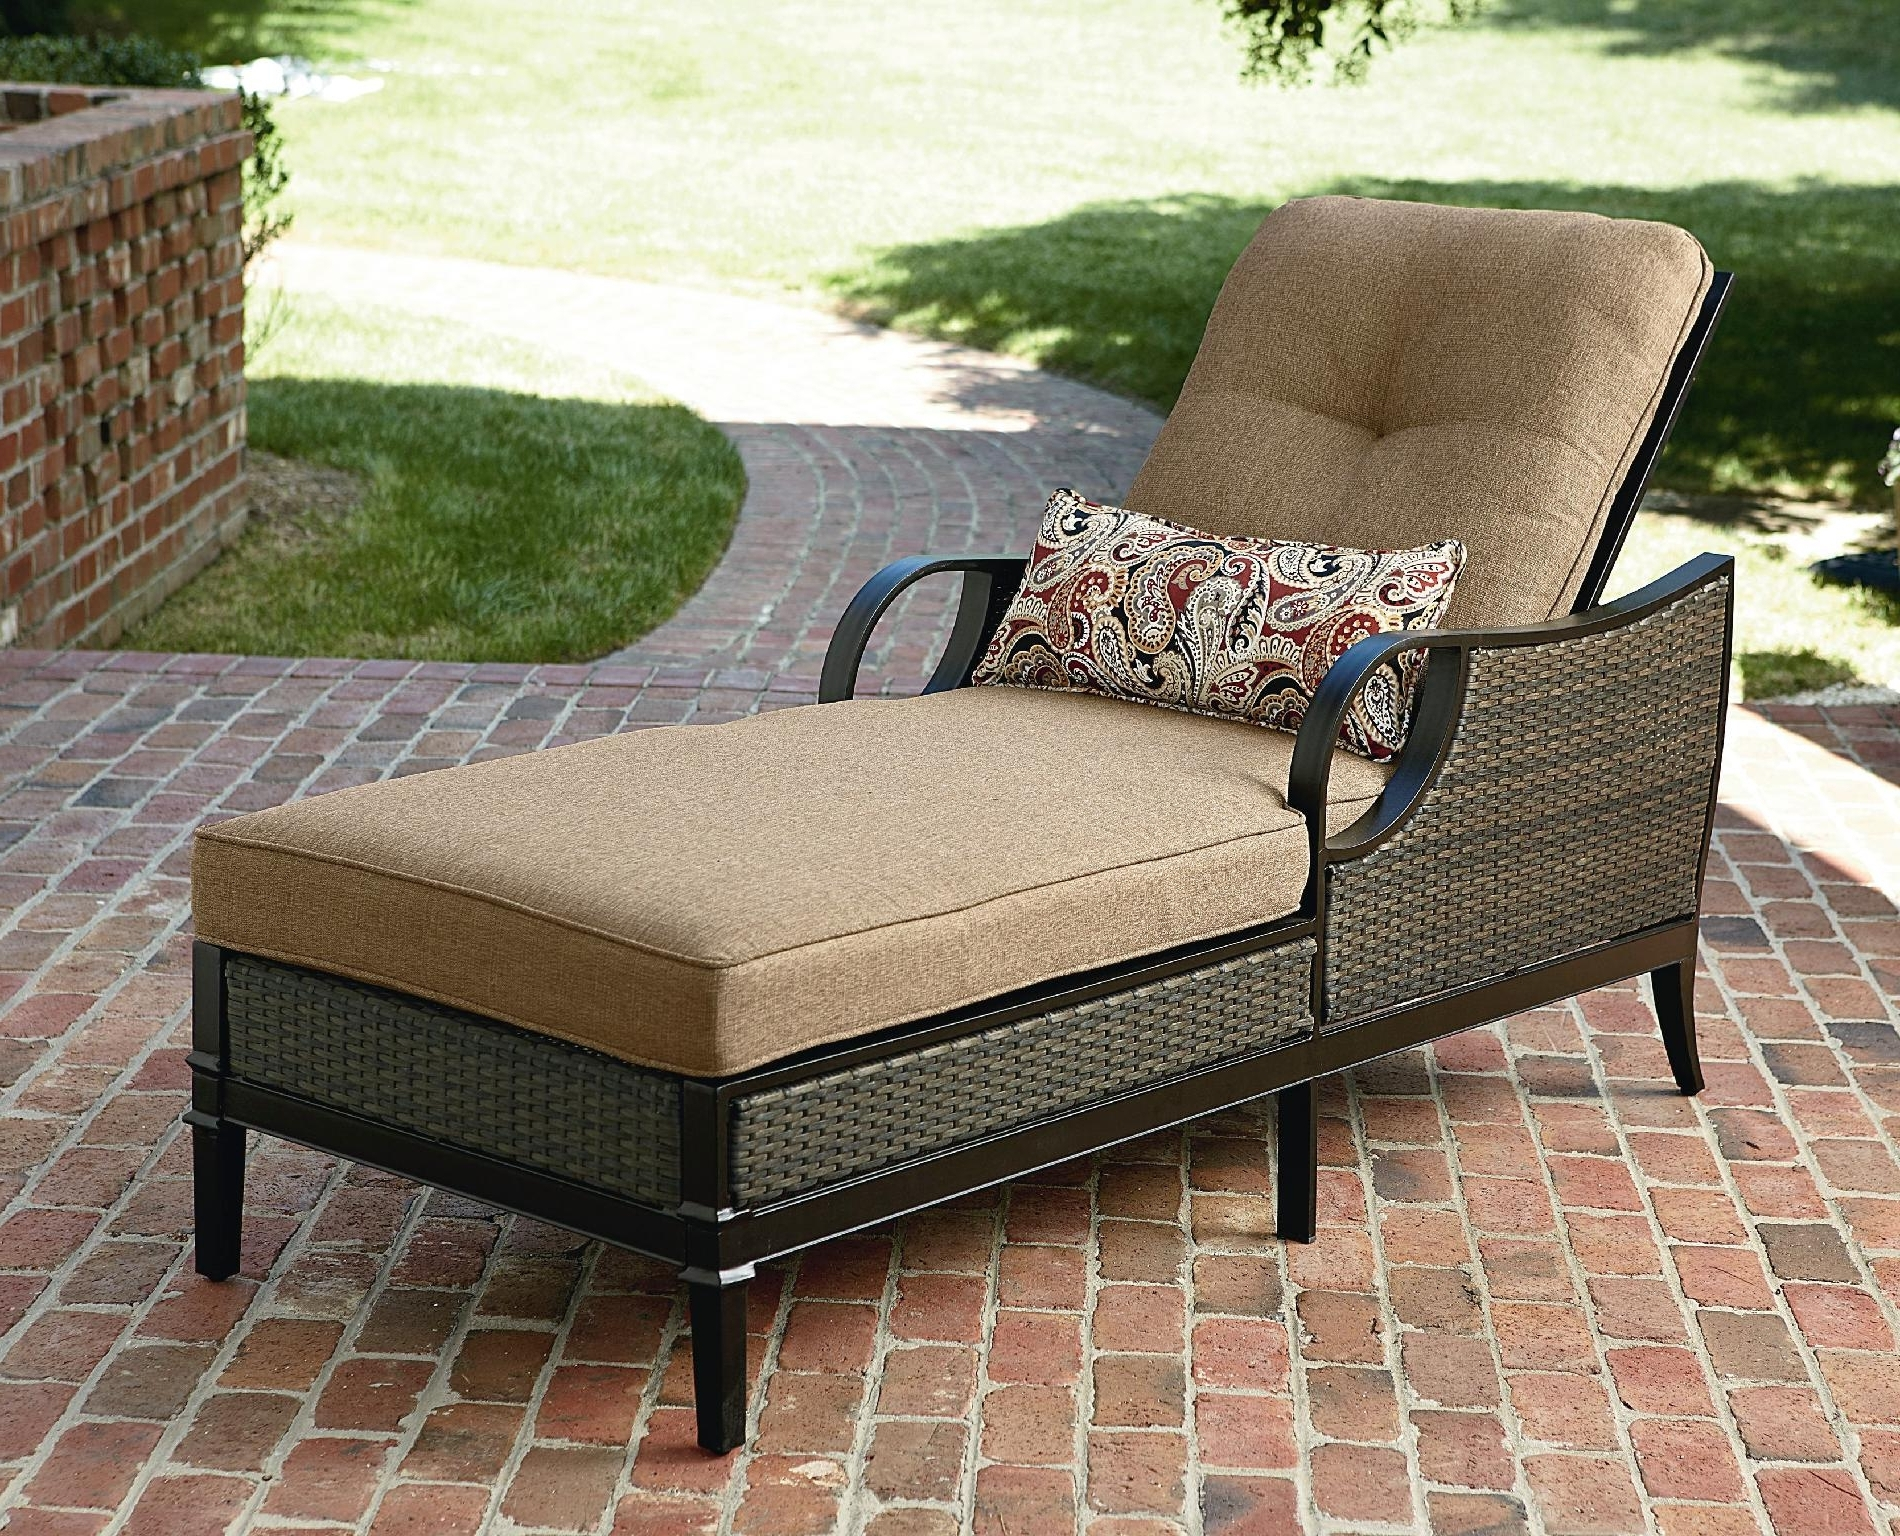 Trendy Lounge Chair Patio Sets • Lounge Chairs Ideas With Chaise Lounges For Patio (View 10 of 15)